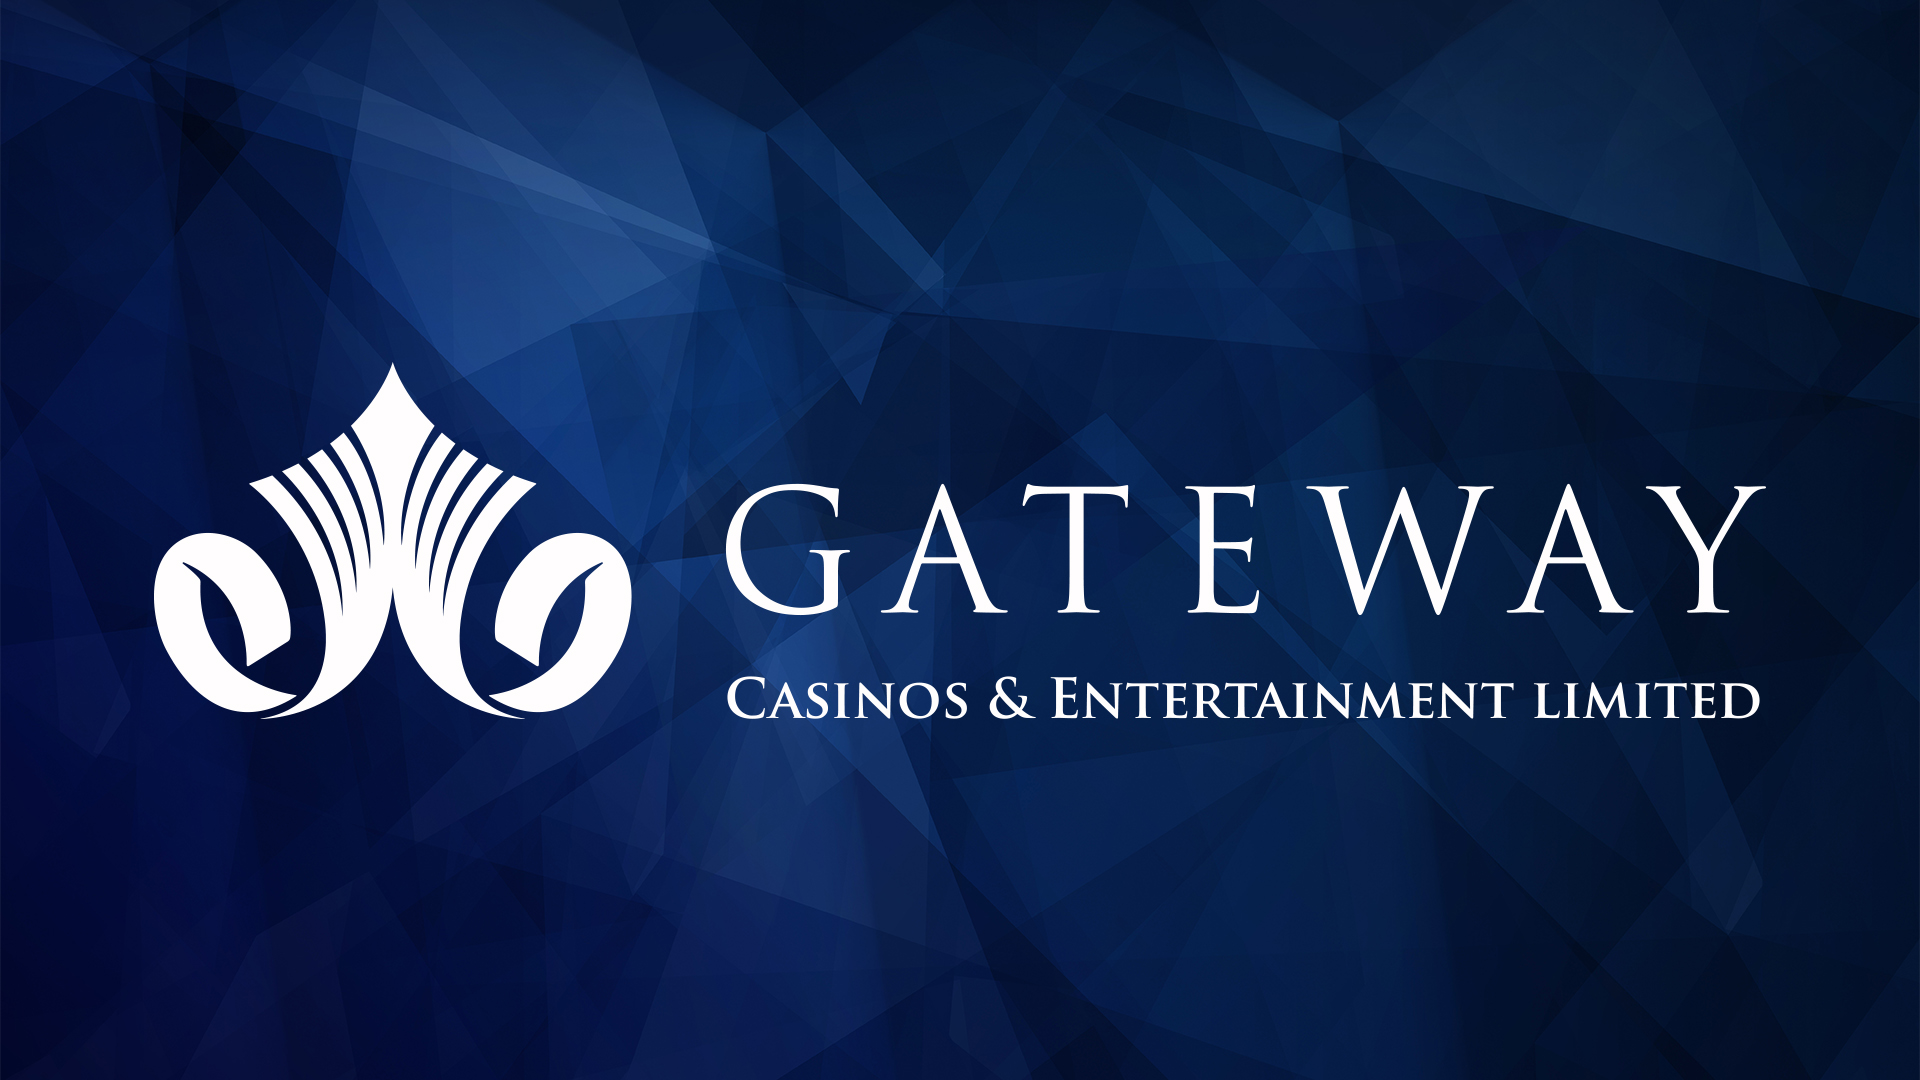 Gateway Casinos & Entertainment Ltd